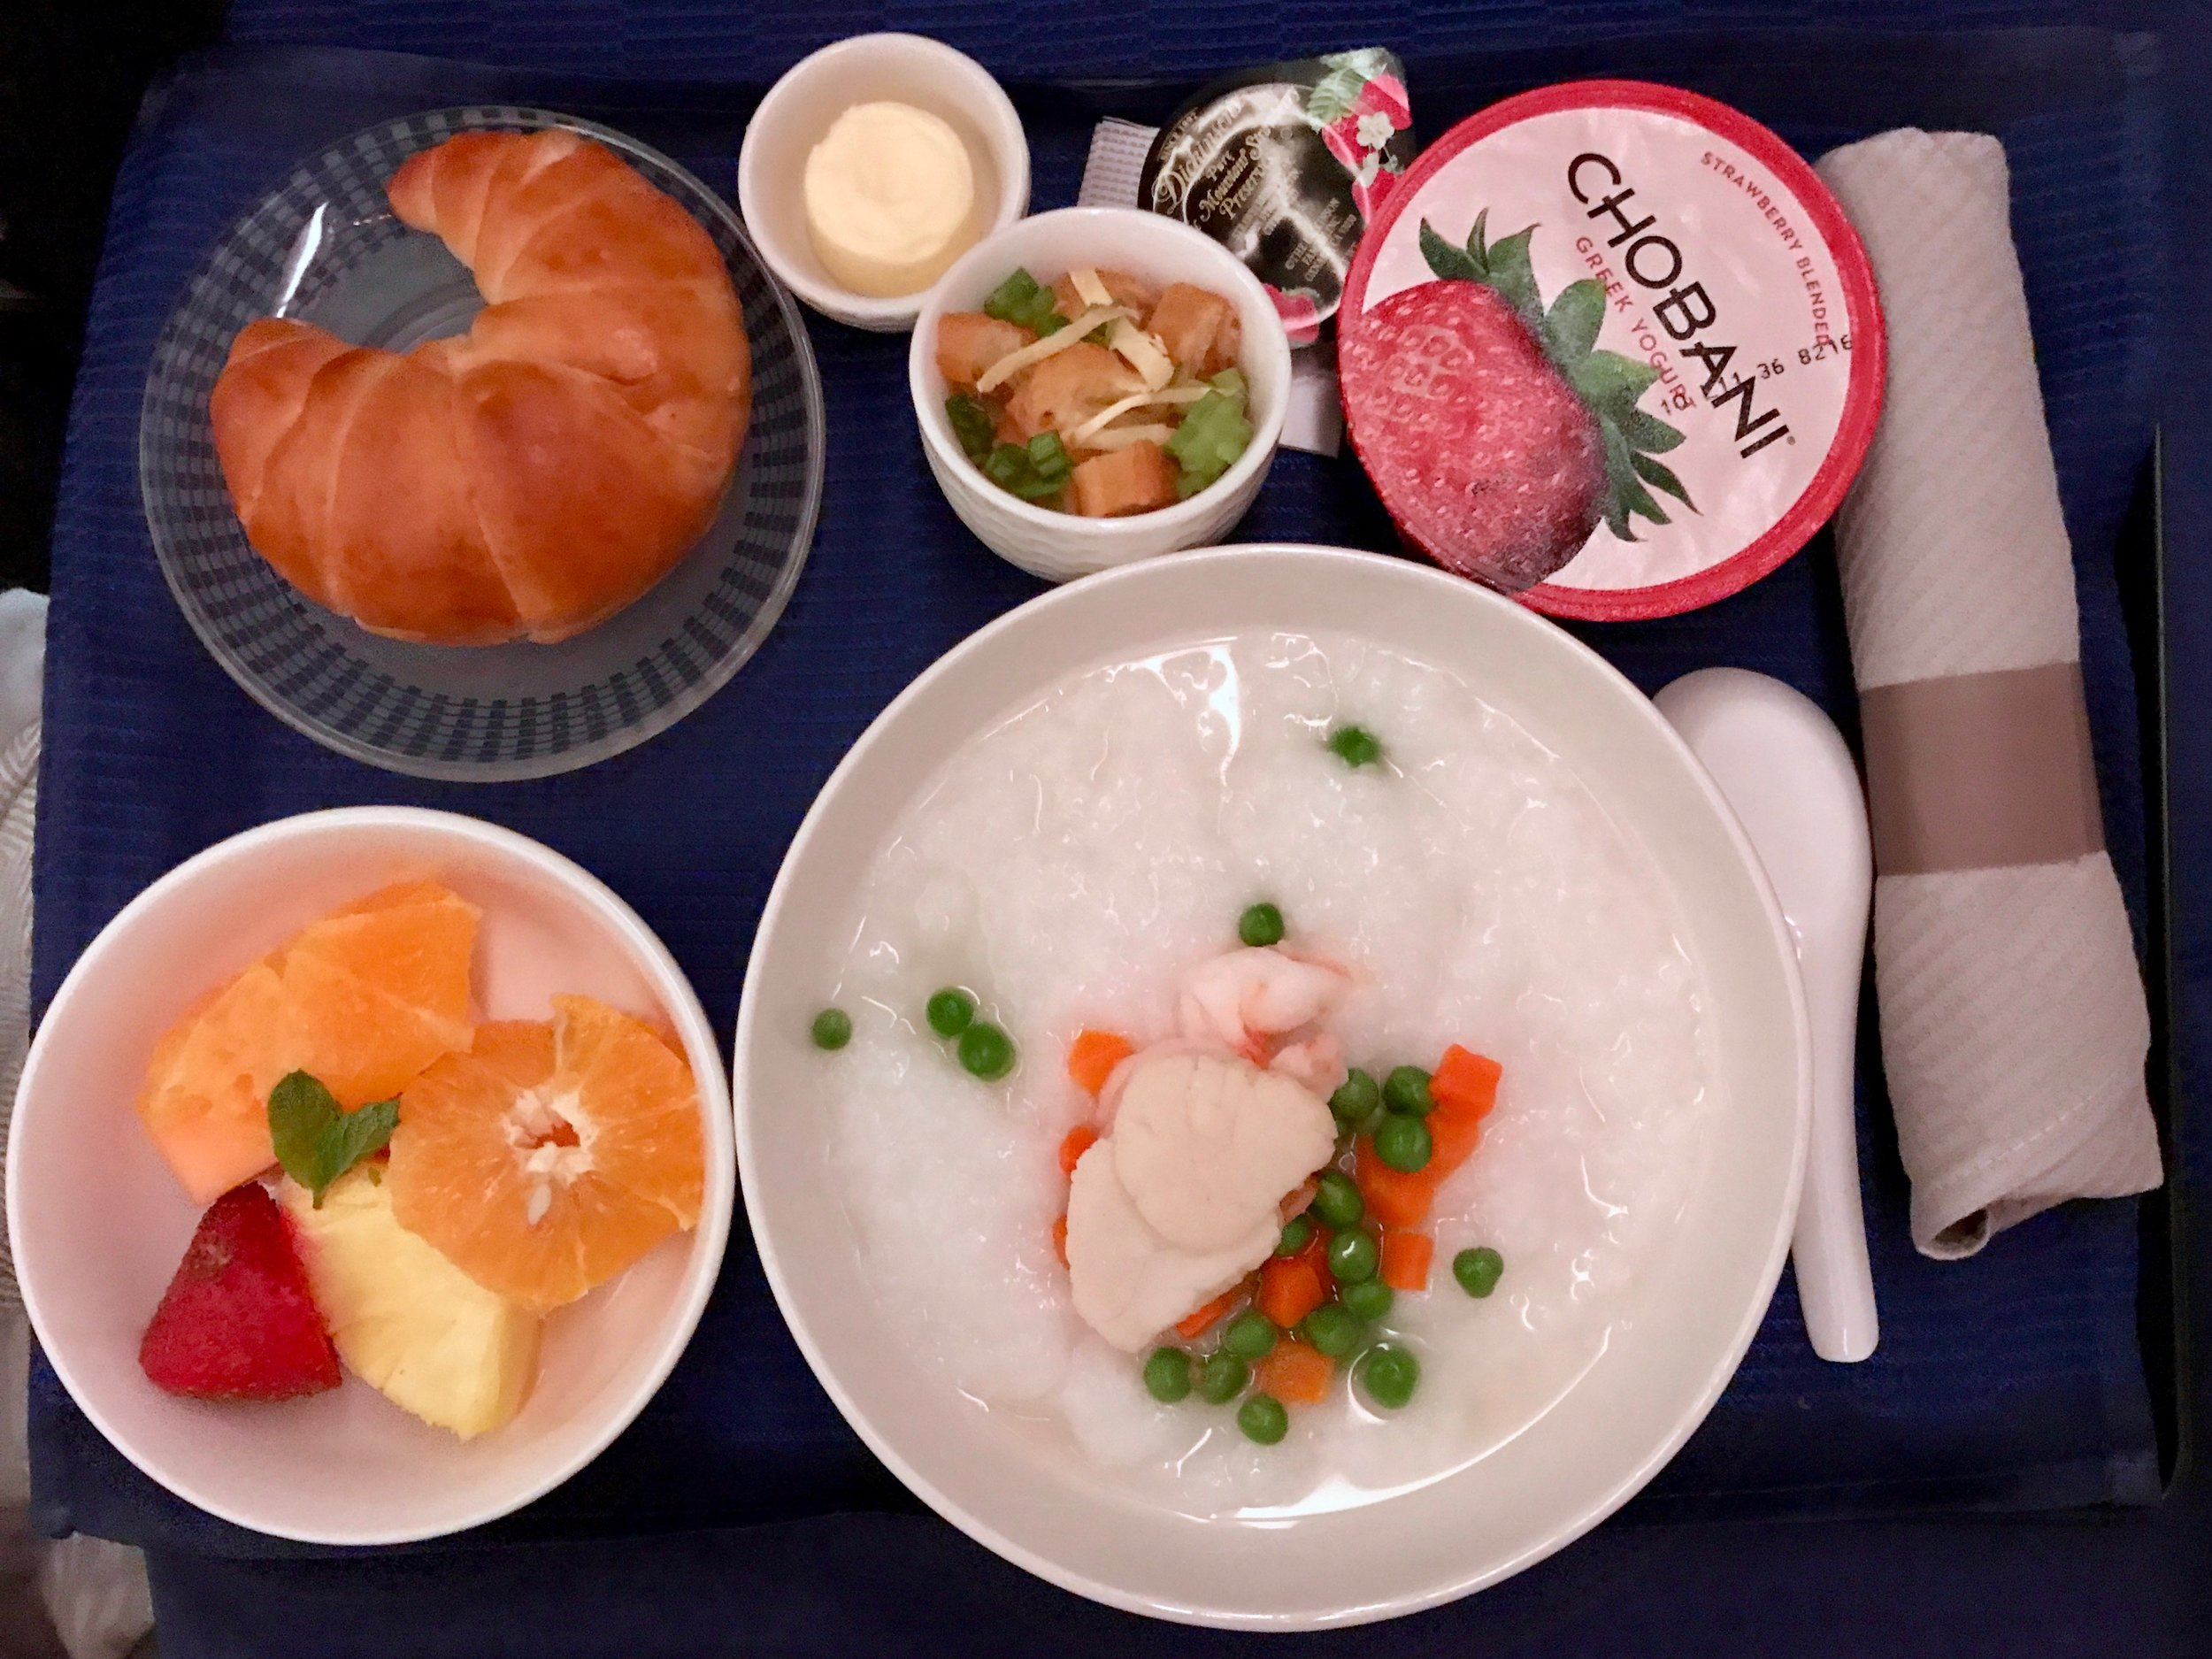 Seafood congee and fresh fruits for breakfast.